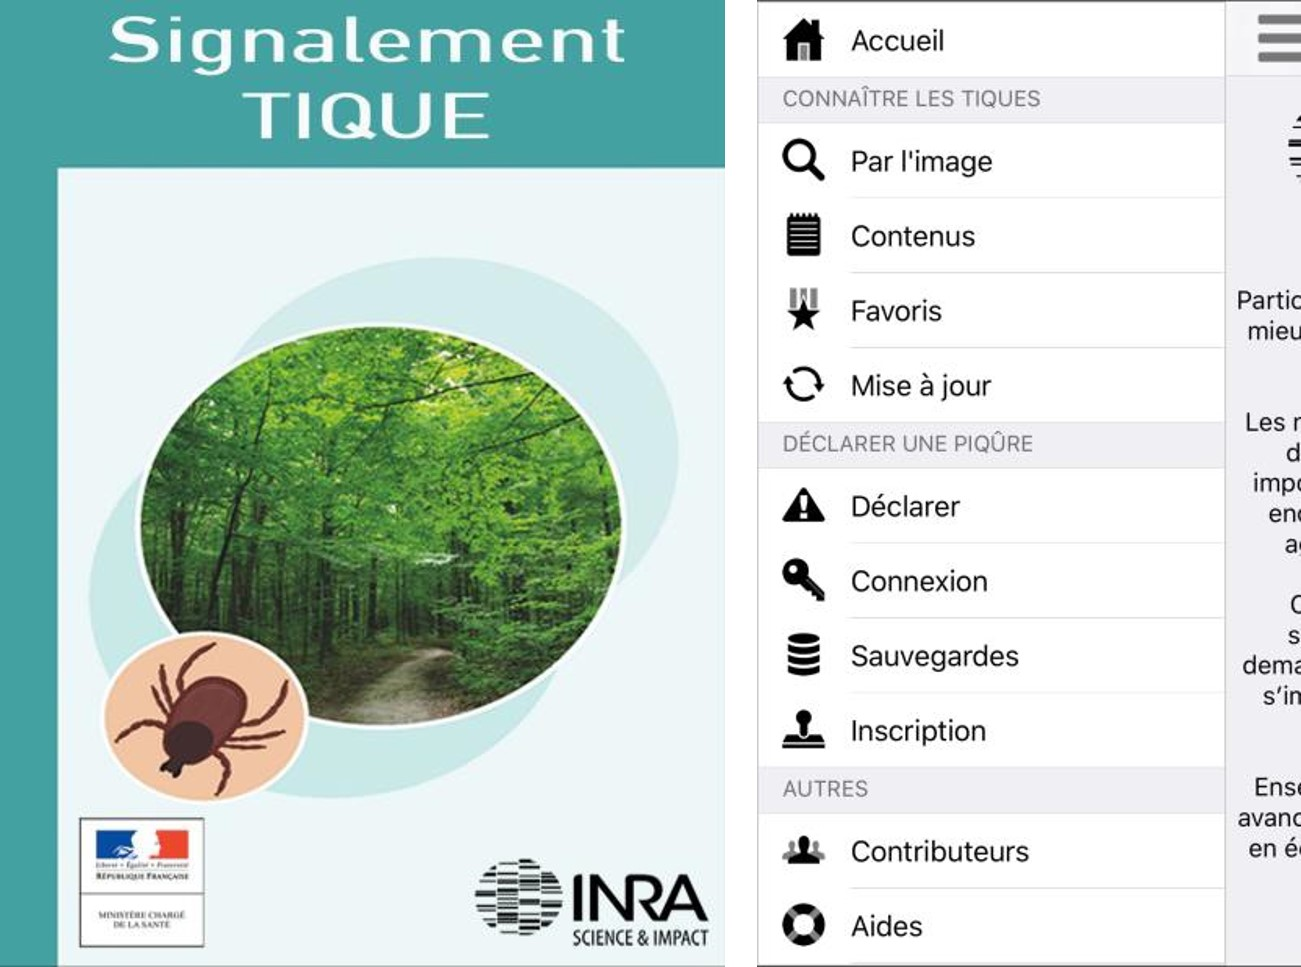 SIGNALEMENT TIQUE APPLICATION TÉLÉCHARGER